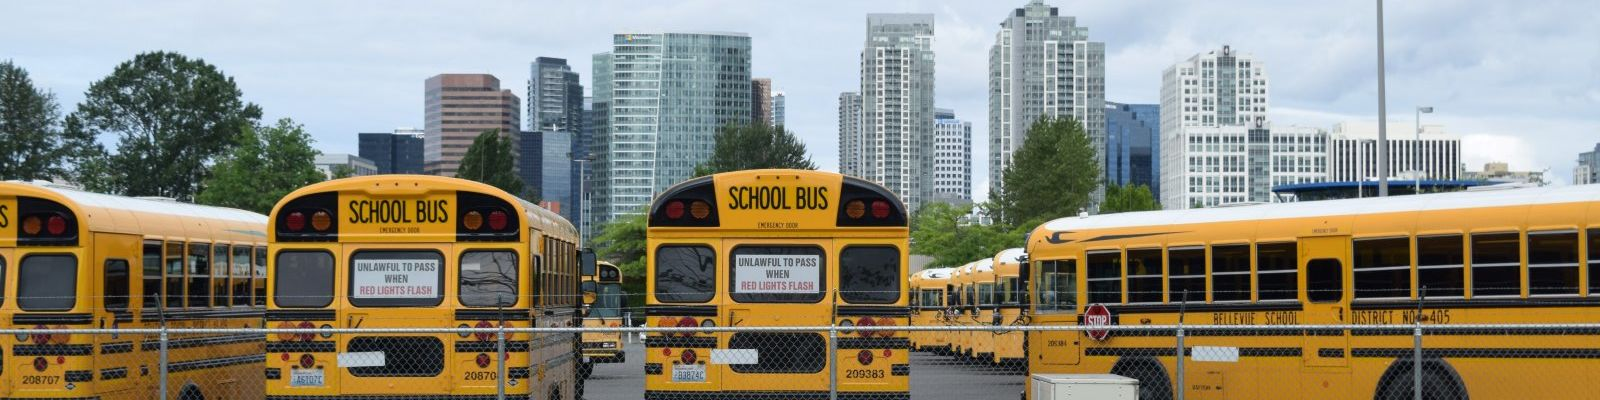 school-buses-downtown-skyline-1600x400.jpg